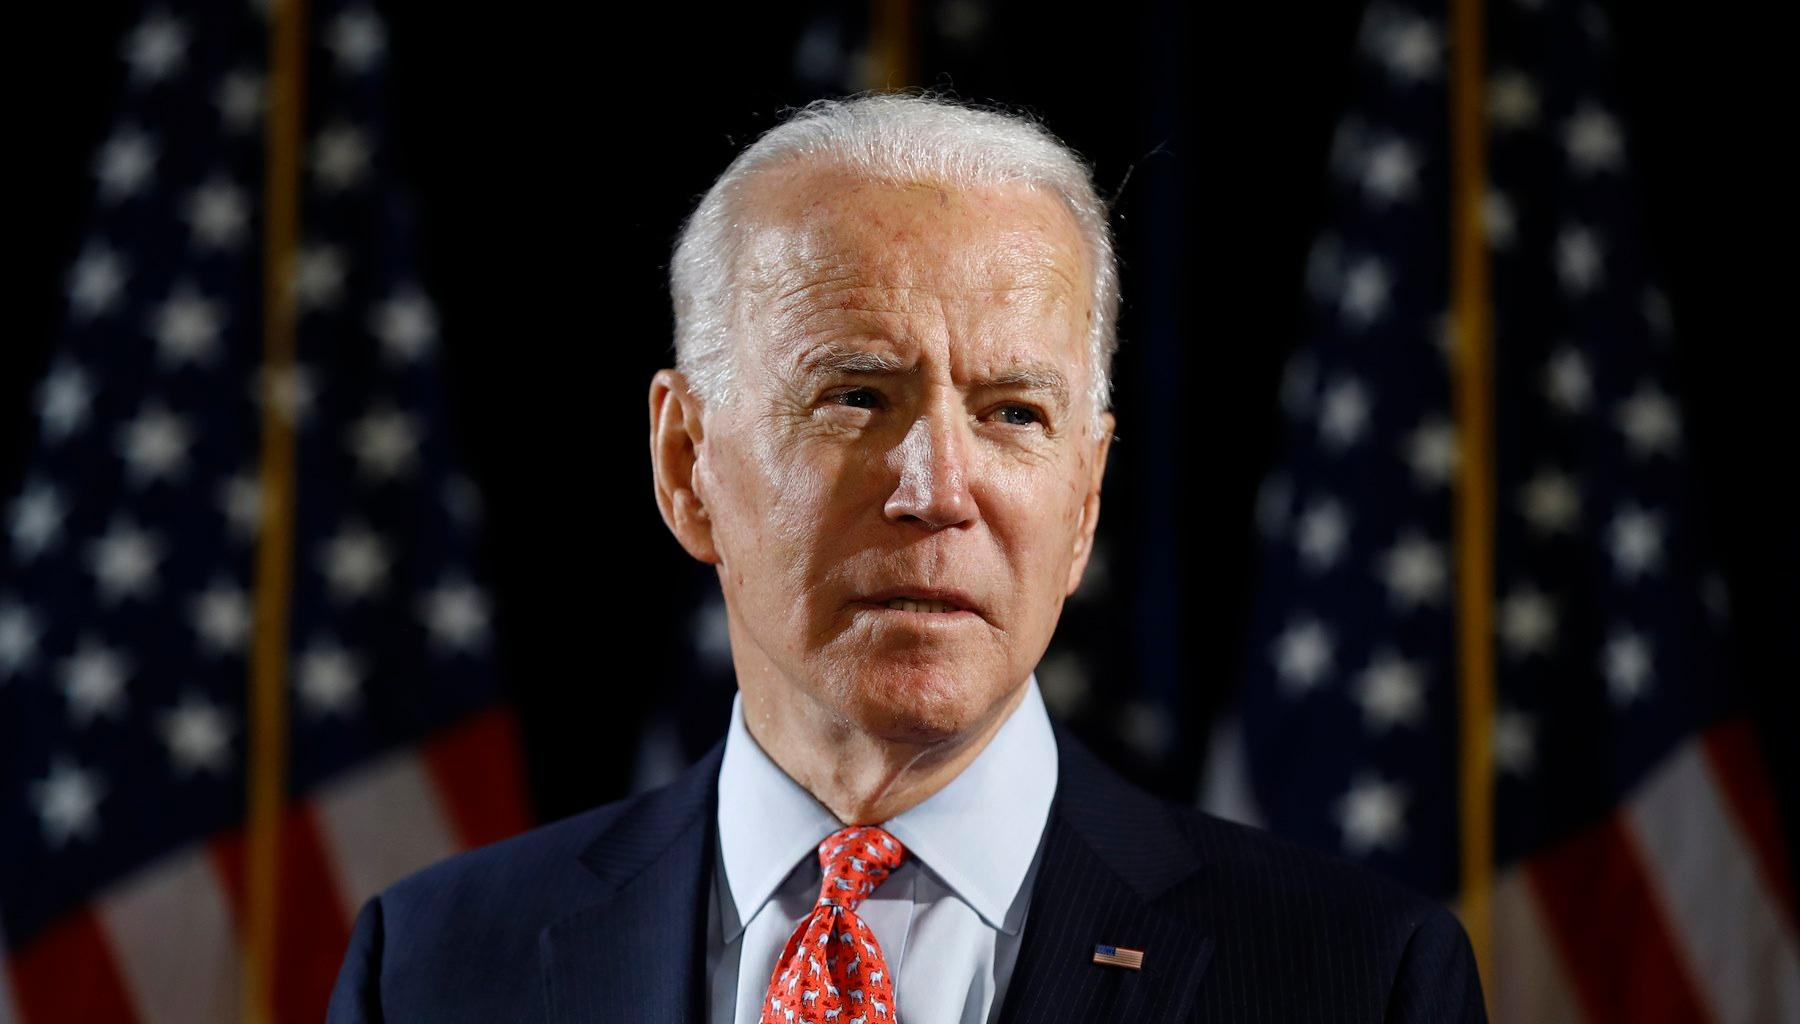 Bernie Sanders Speaks About Endorsing Joe Biden After Being Invited To Be Part Of His Presidential Journey